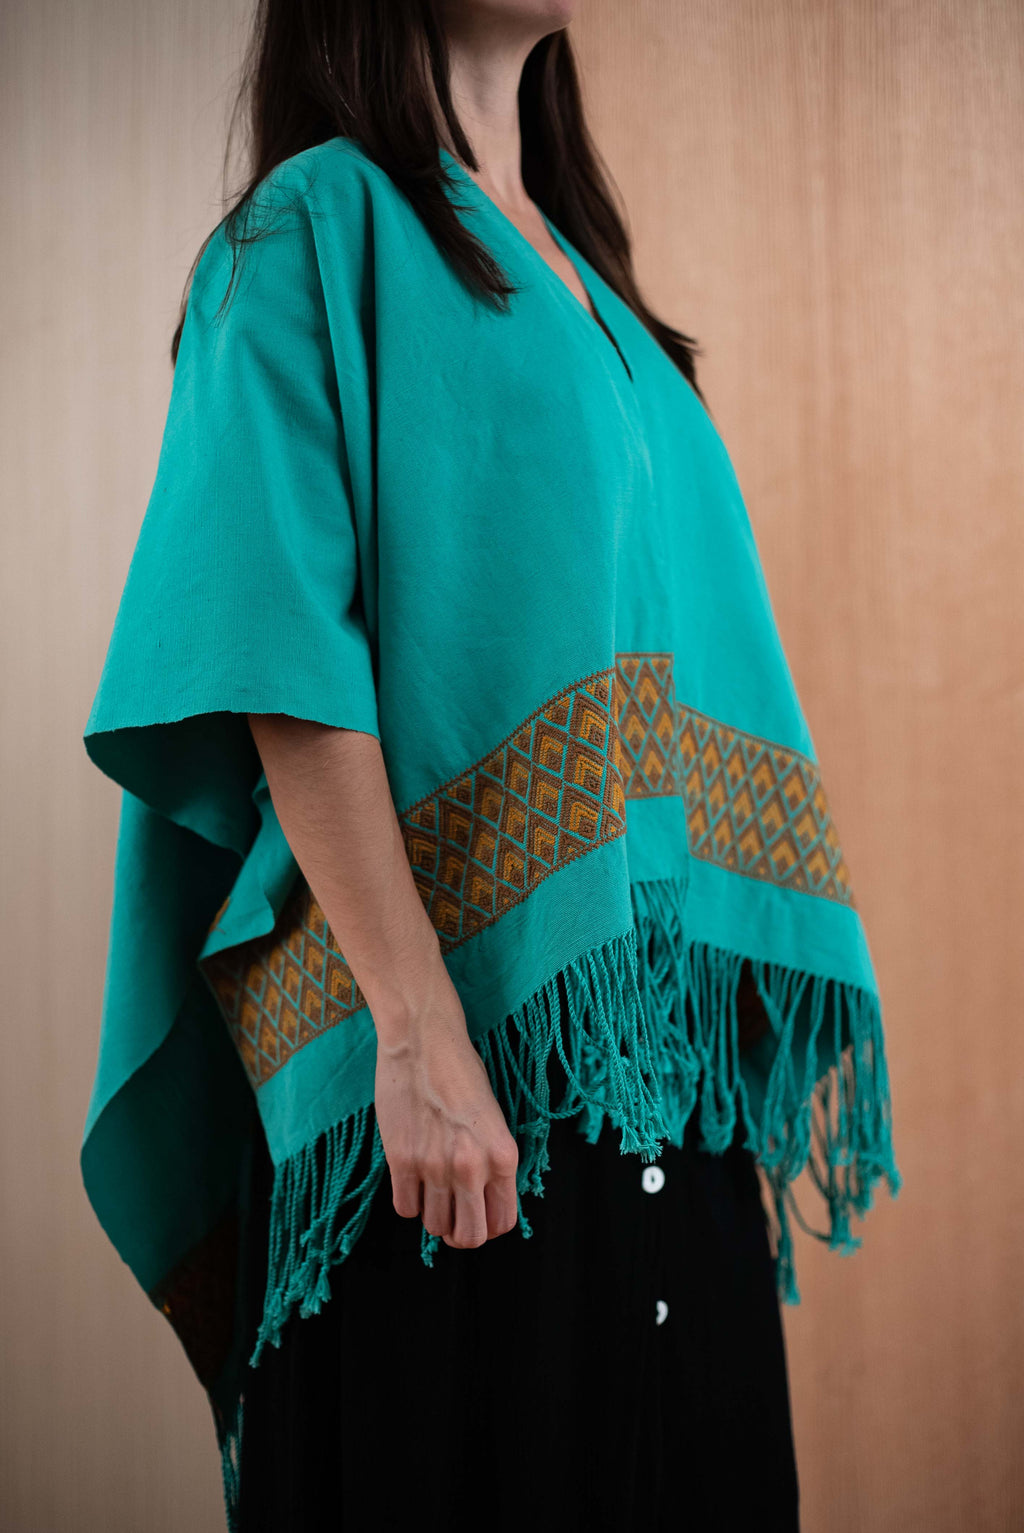 Shawl with green Chiapas loom - TOCO MADERA - Handcraft shoe from Mexico - Handmade shoe